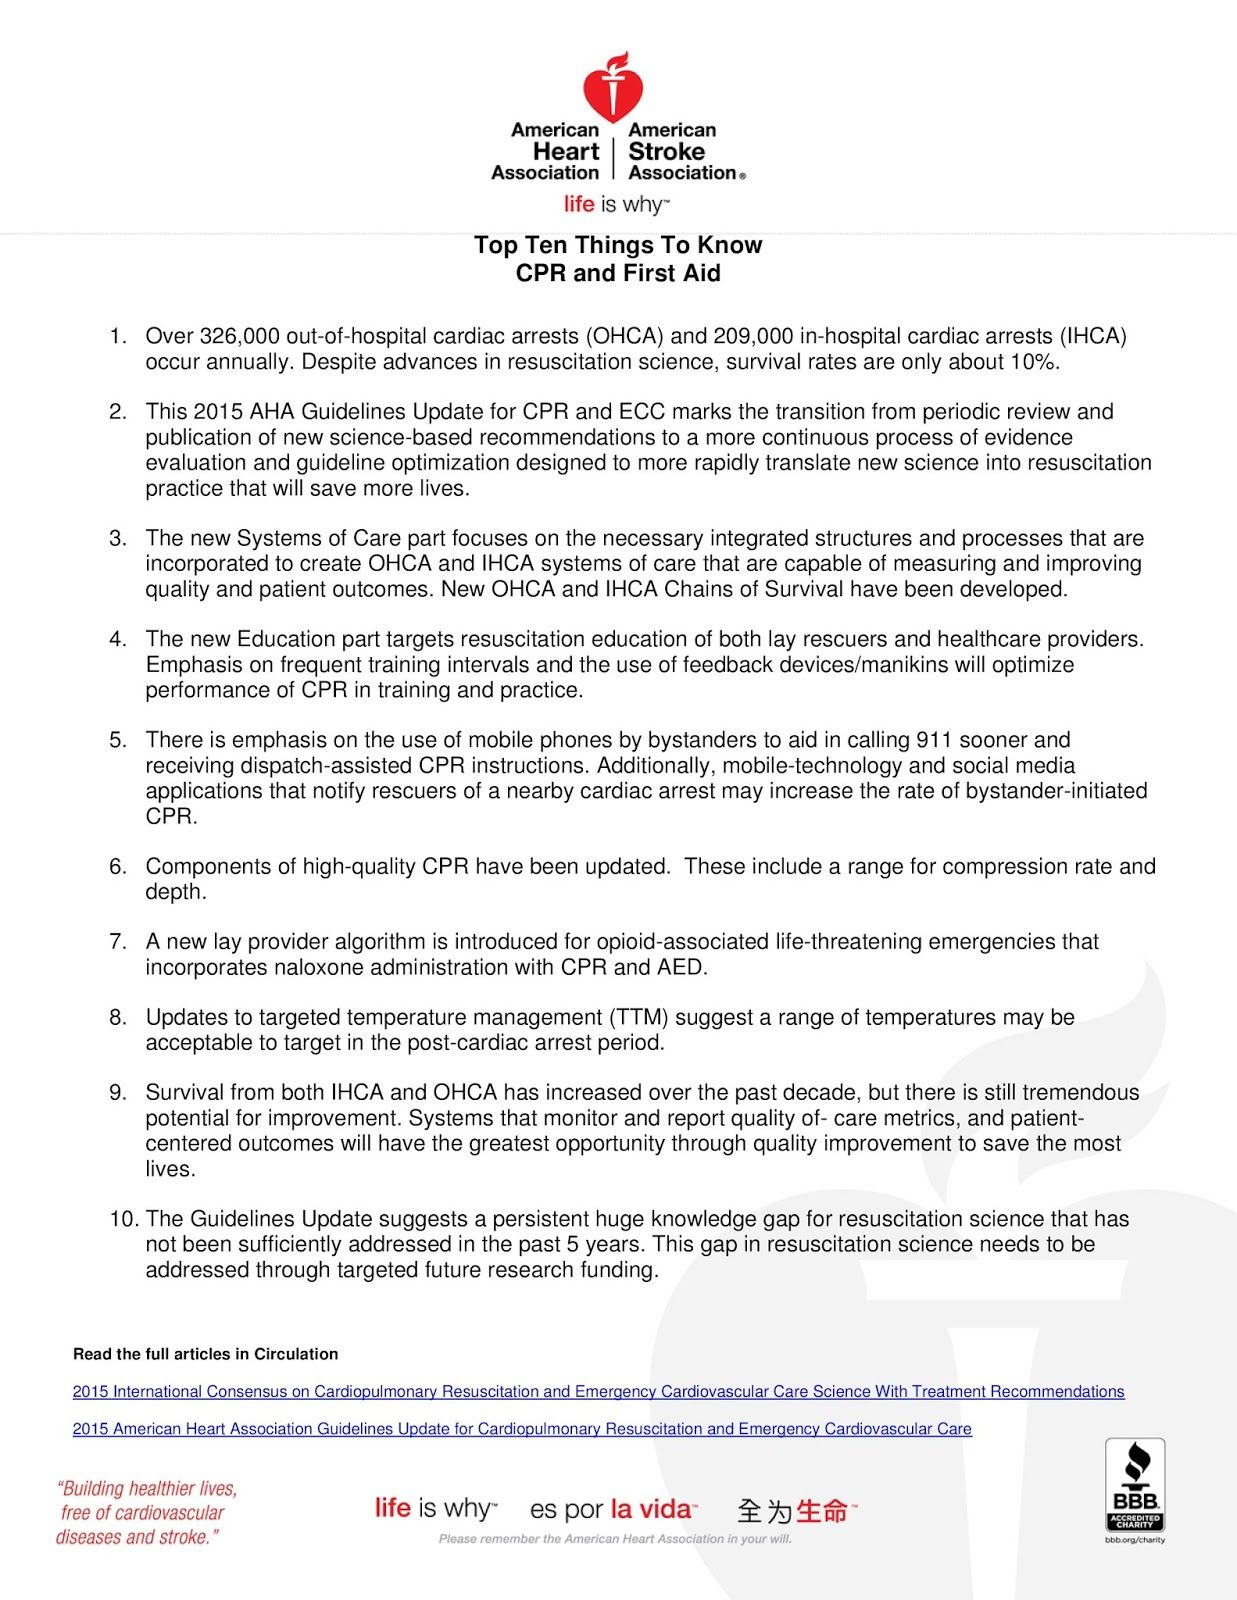 Top 10 things to know cpr and first aid 2015 aha guidelines top 10 things to know cpr and first aid 2015 aha guidelines highlights 1betcityfo Images